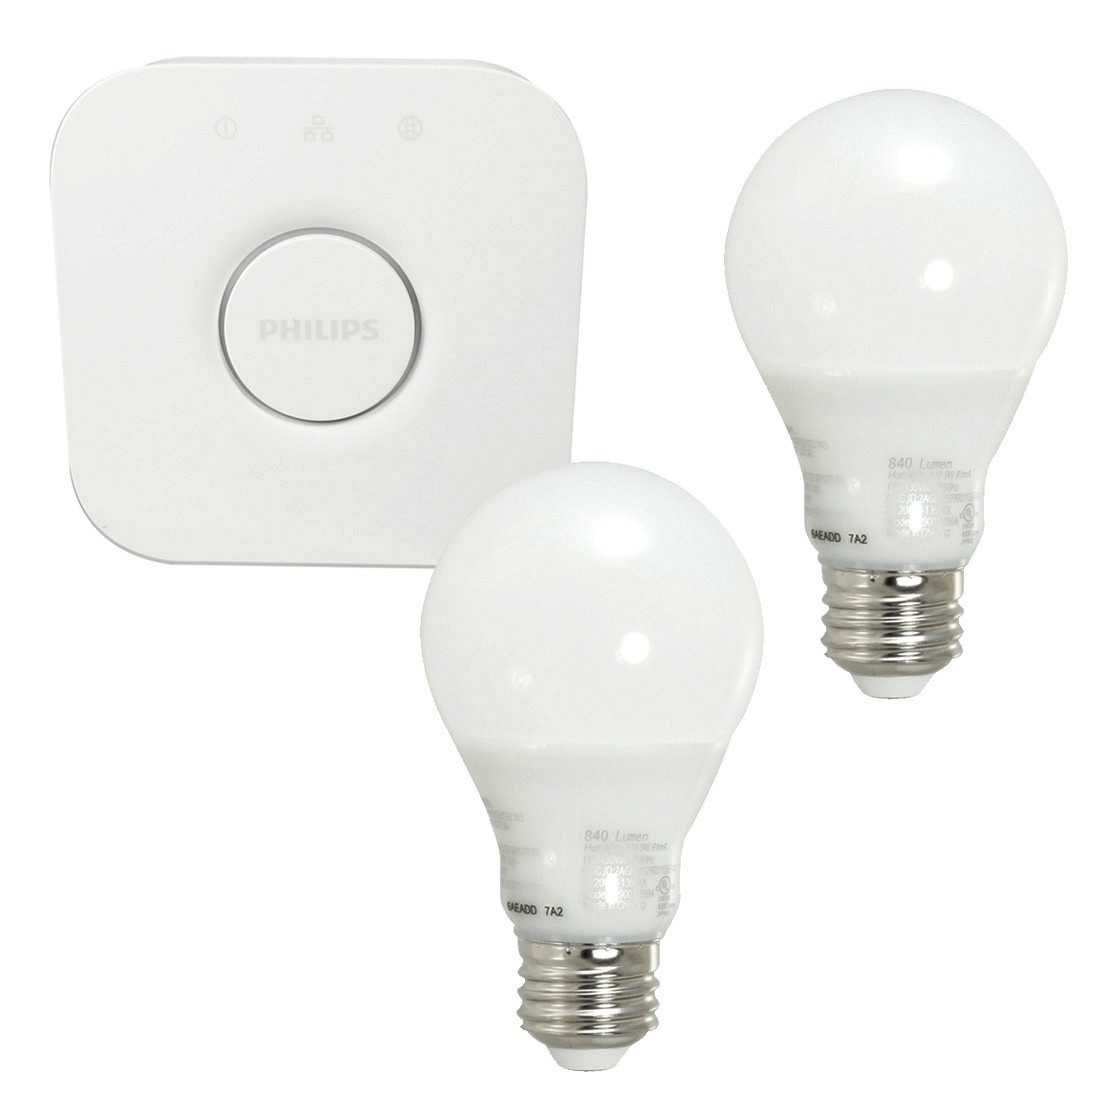 Philips Hue 9w Whit A19 Starter Kit (2-pack)